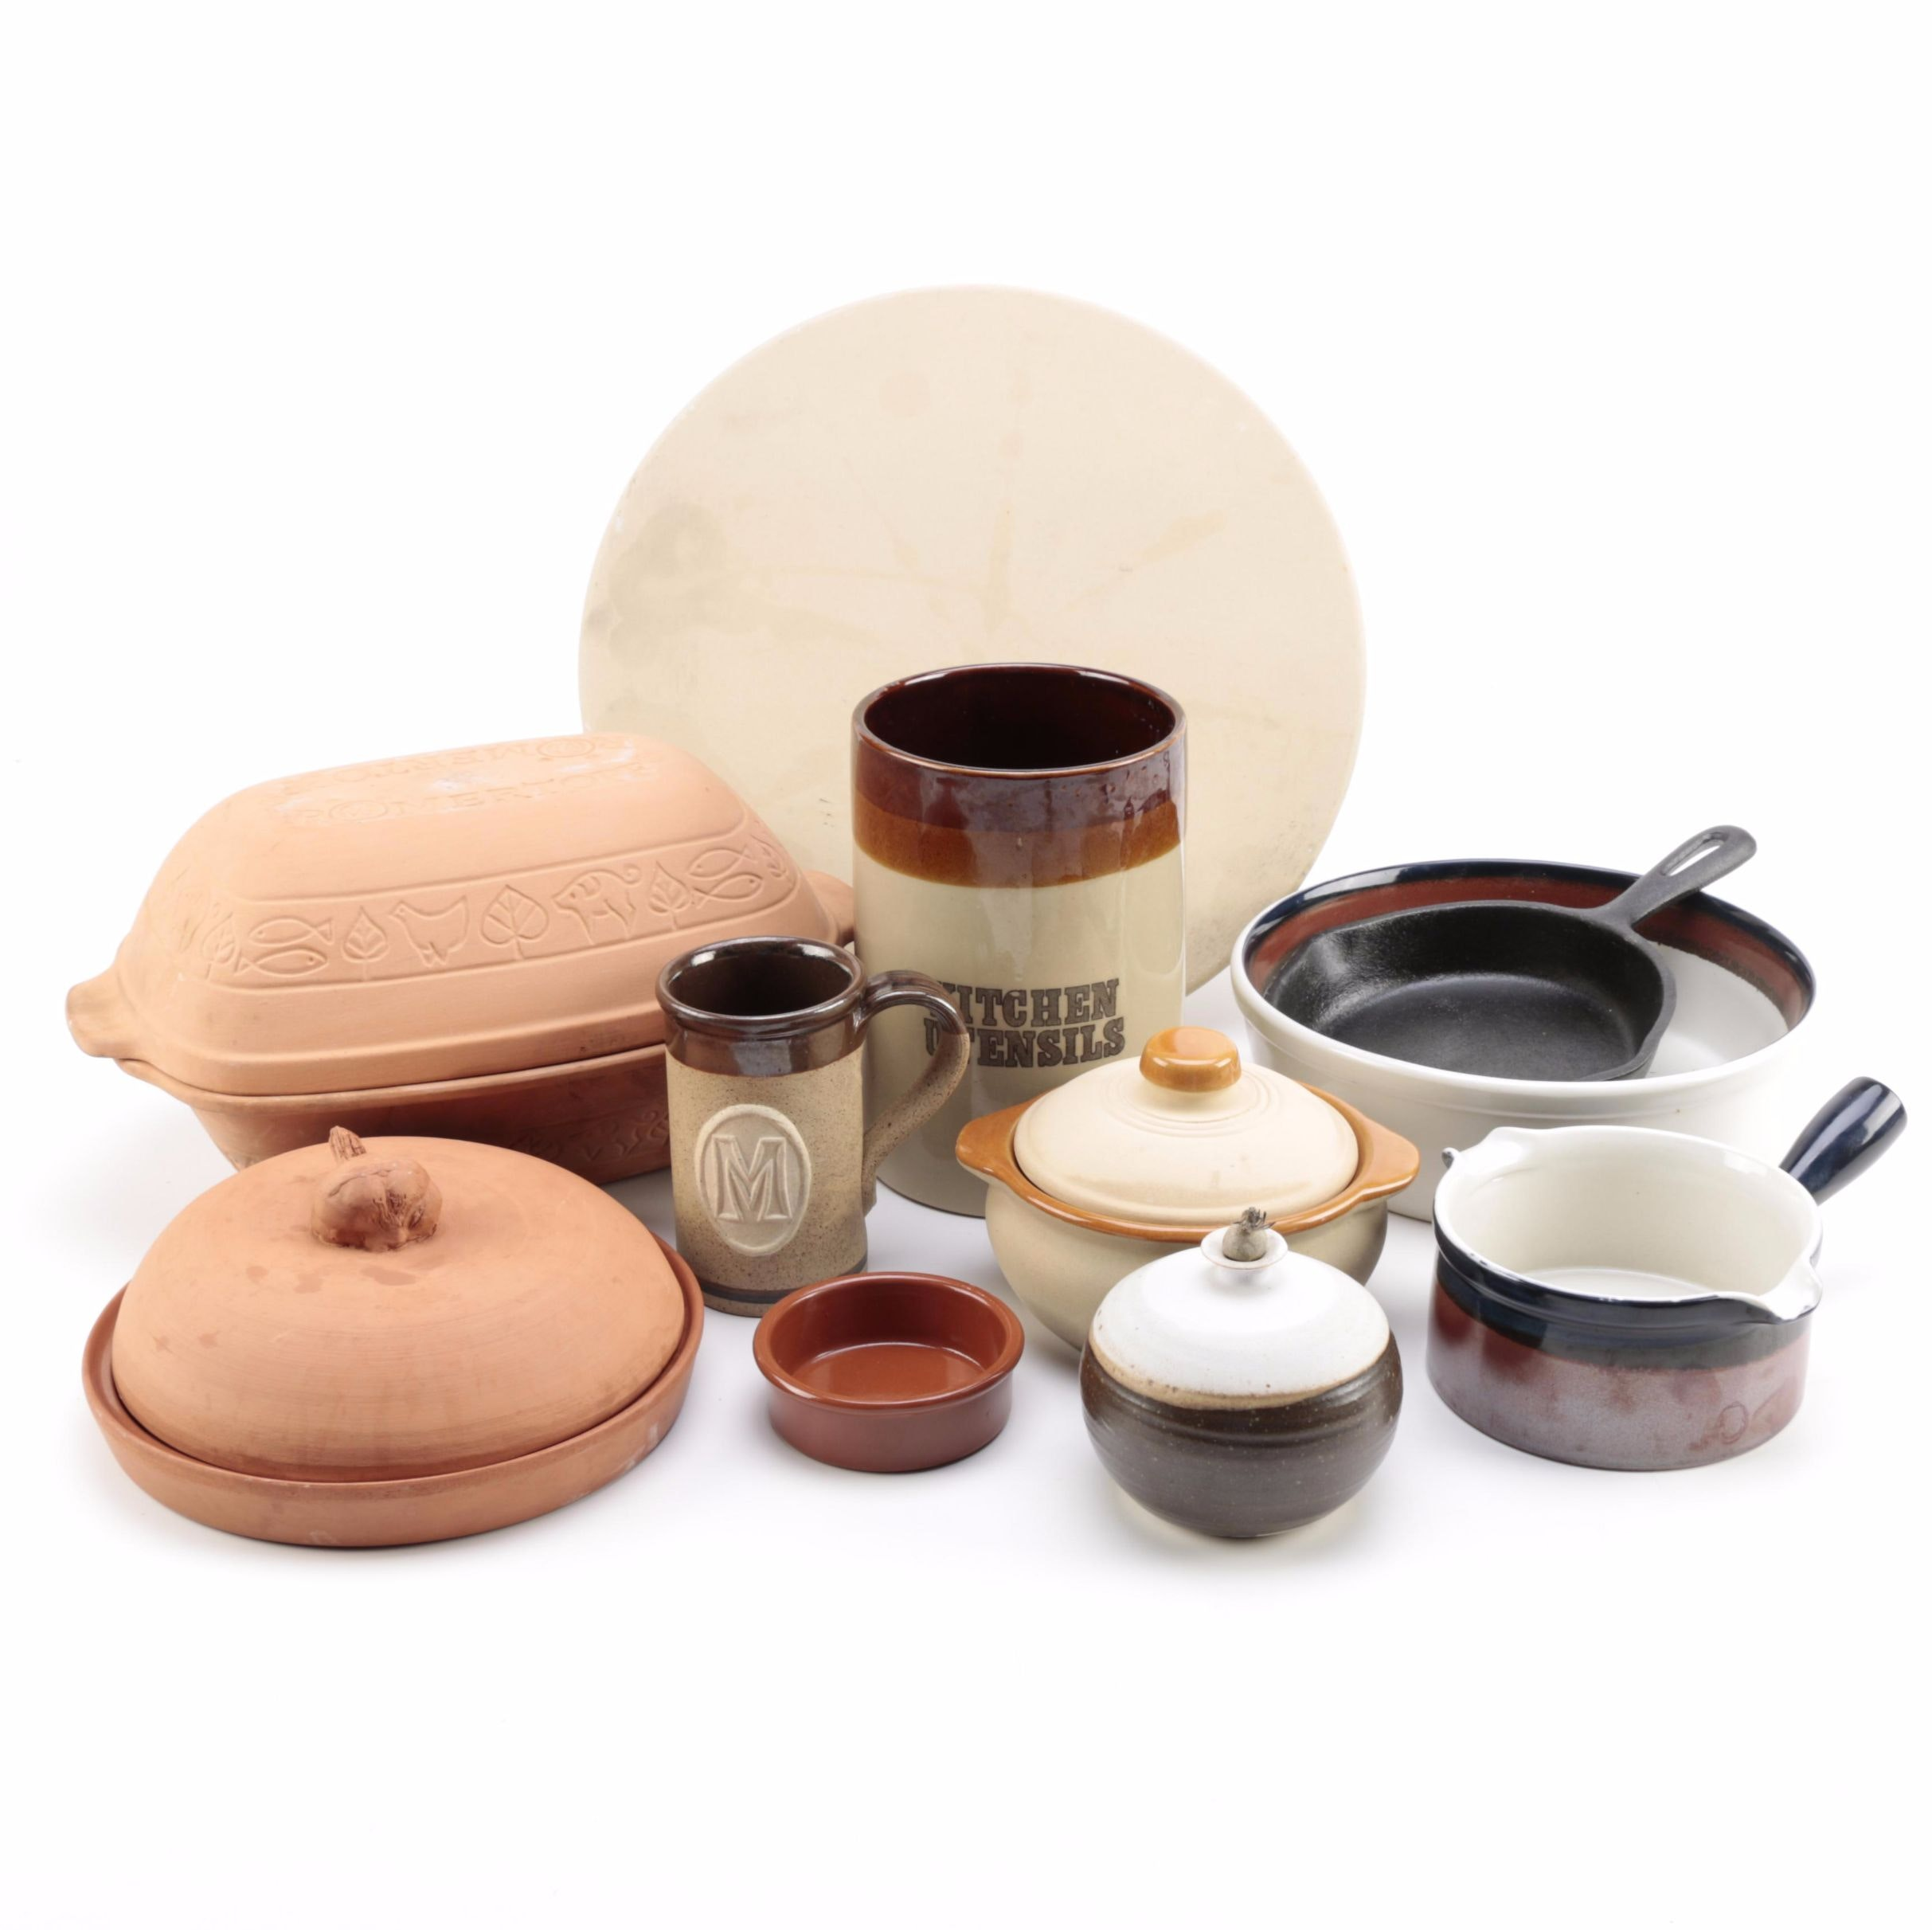 Assorted Kitchenware Including Earthenware